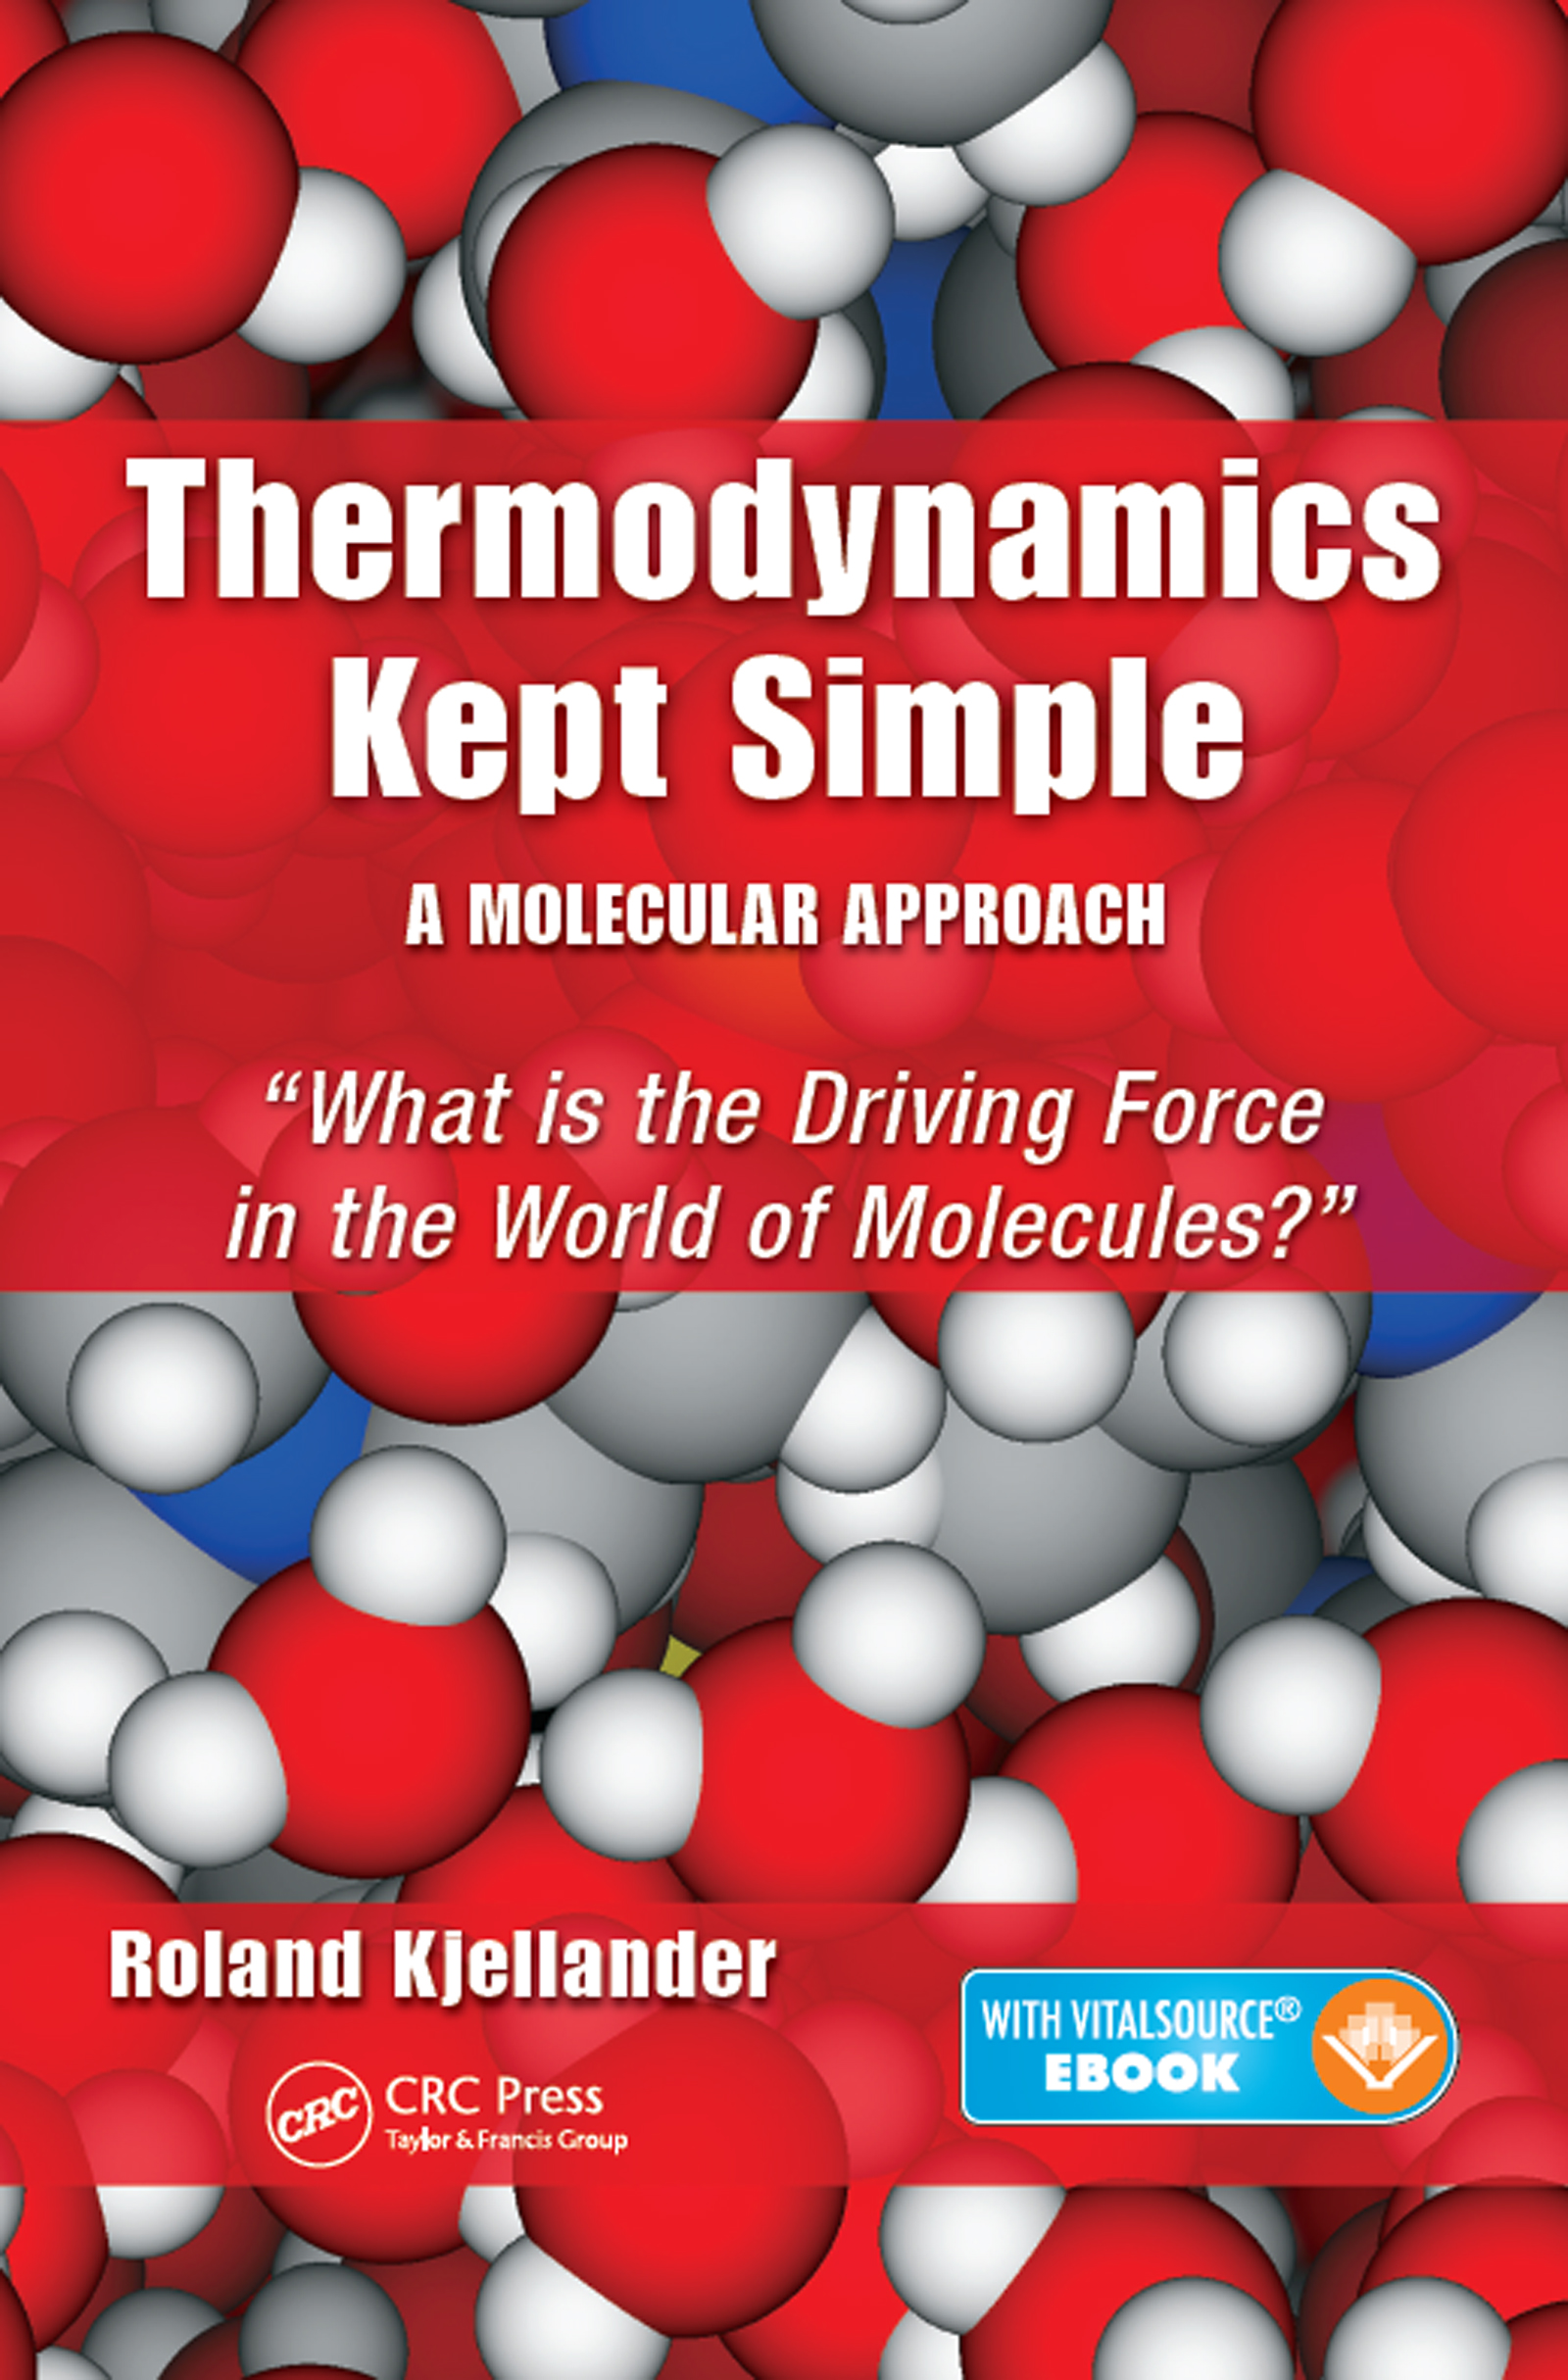 Thermodynamics Kept Simple - A Molecular Approach: What is the Driving Force in the World of Molecules?, 1st Edition (Pack - Book and Ebook) book cover